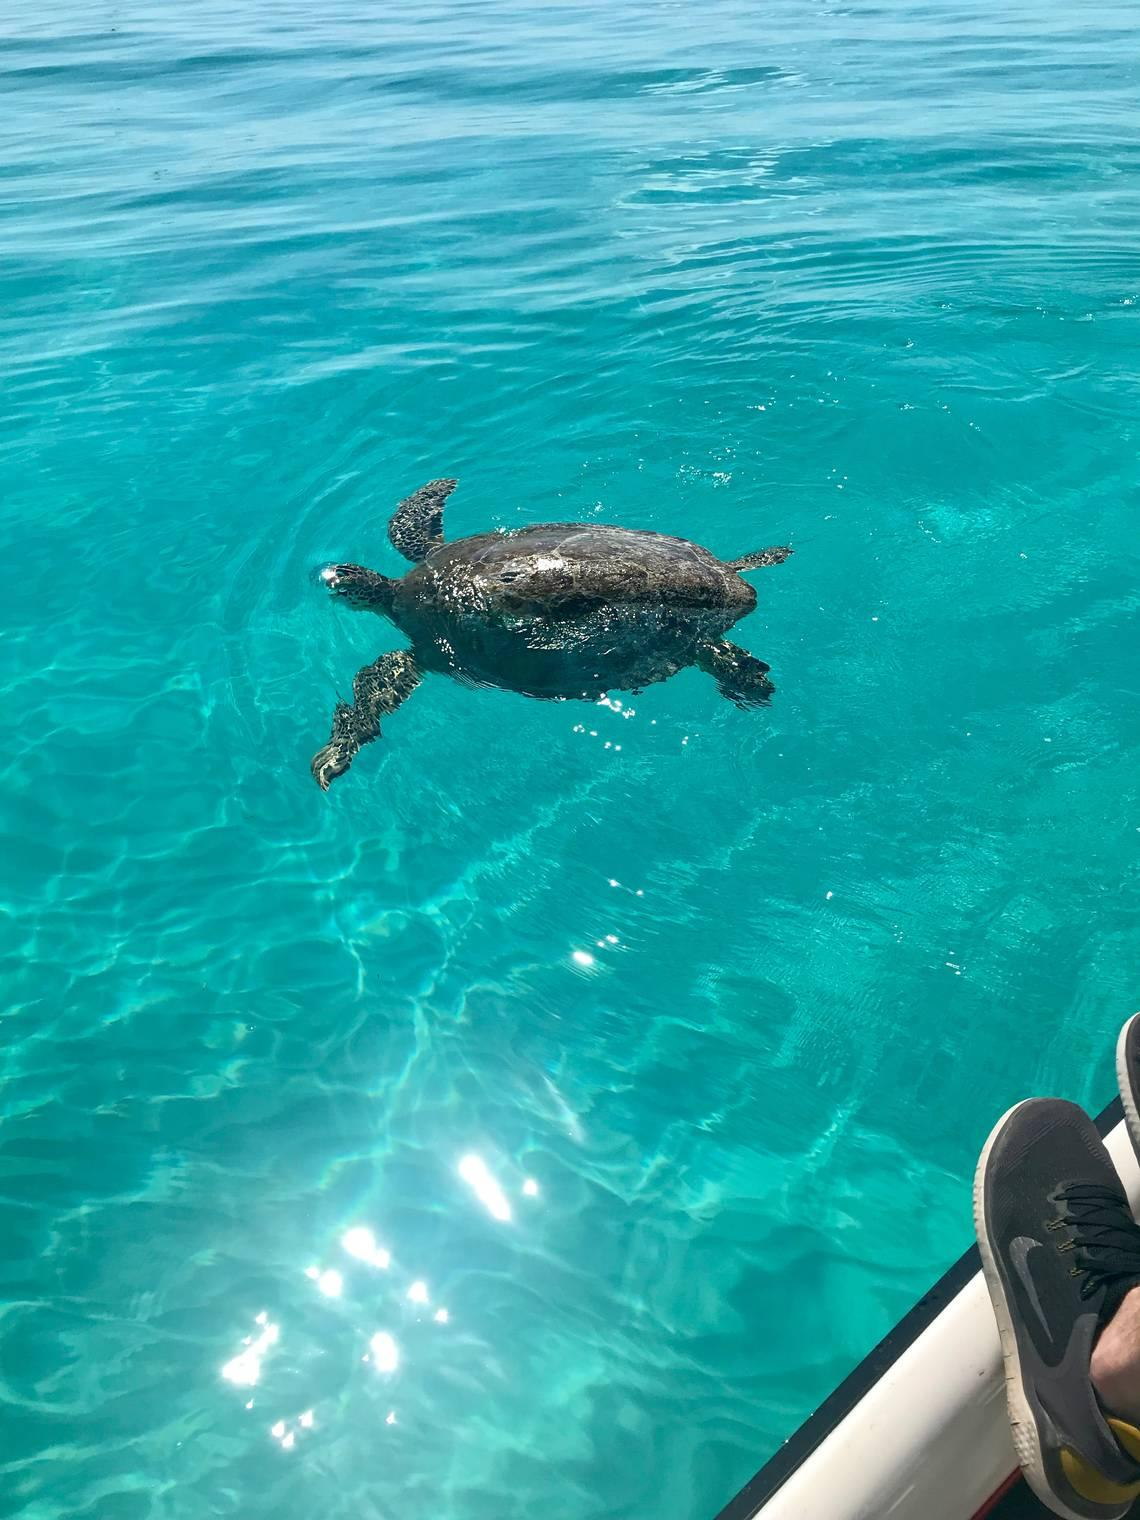 This sea turtle was struggling to swim. Veterinarians are trying to find out why